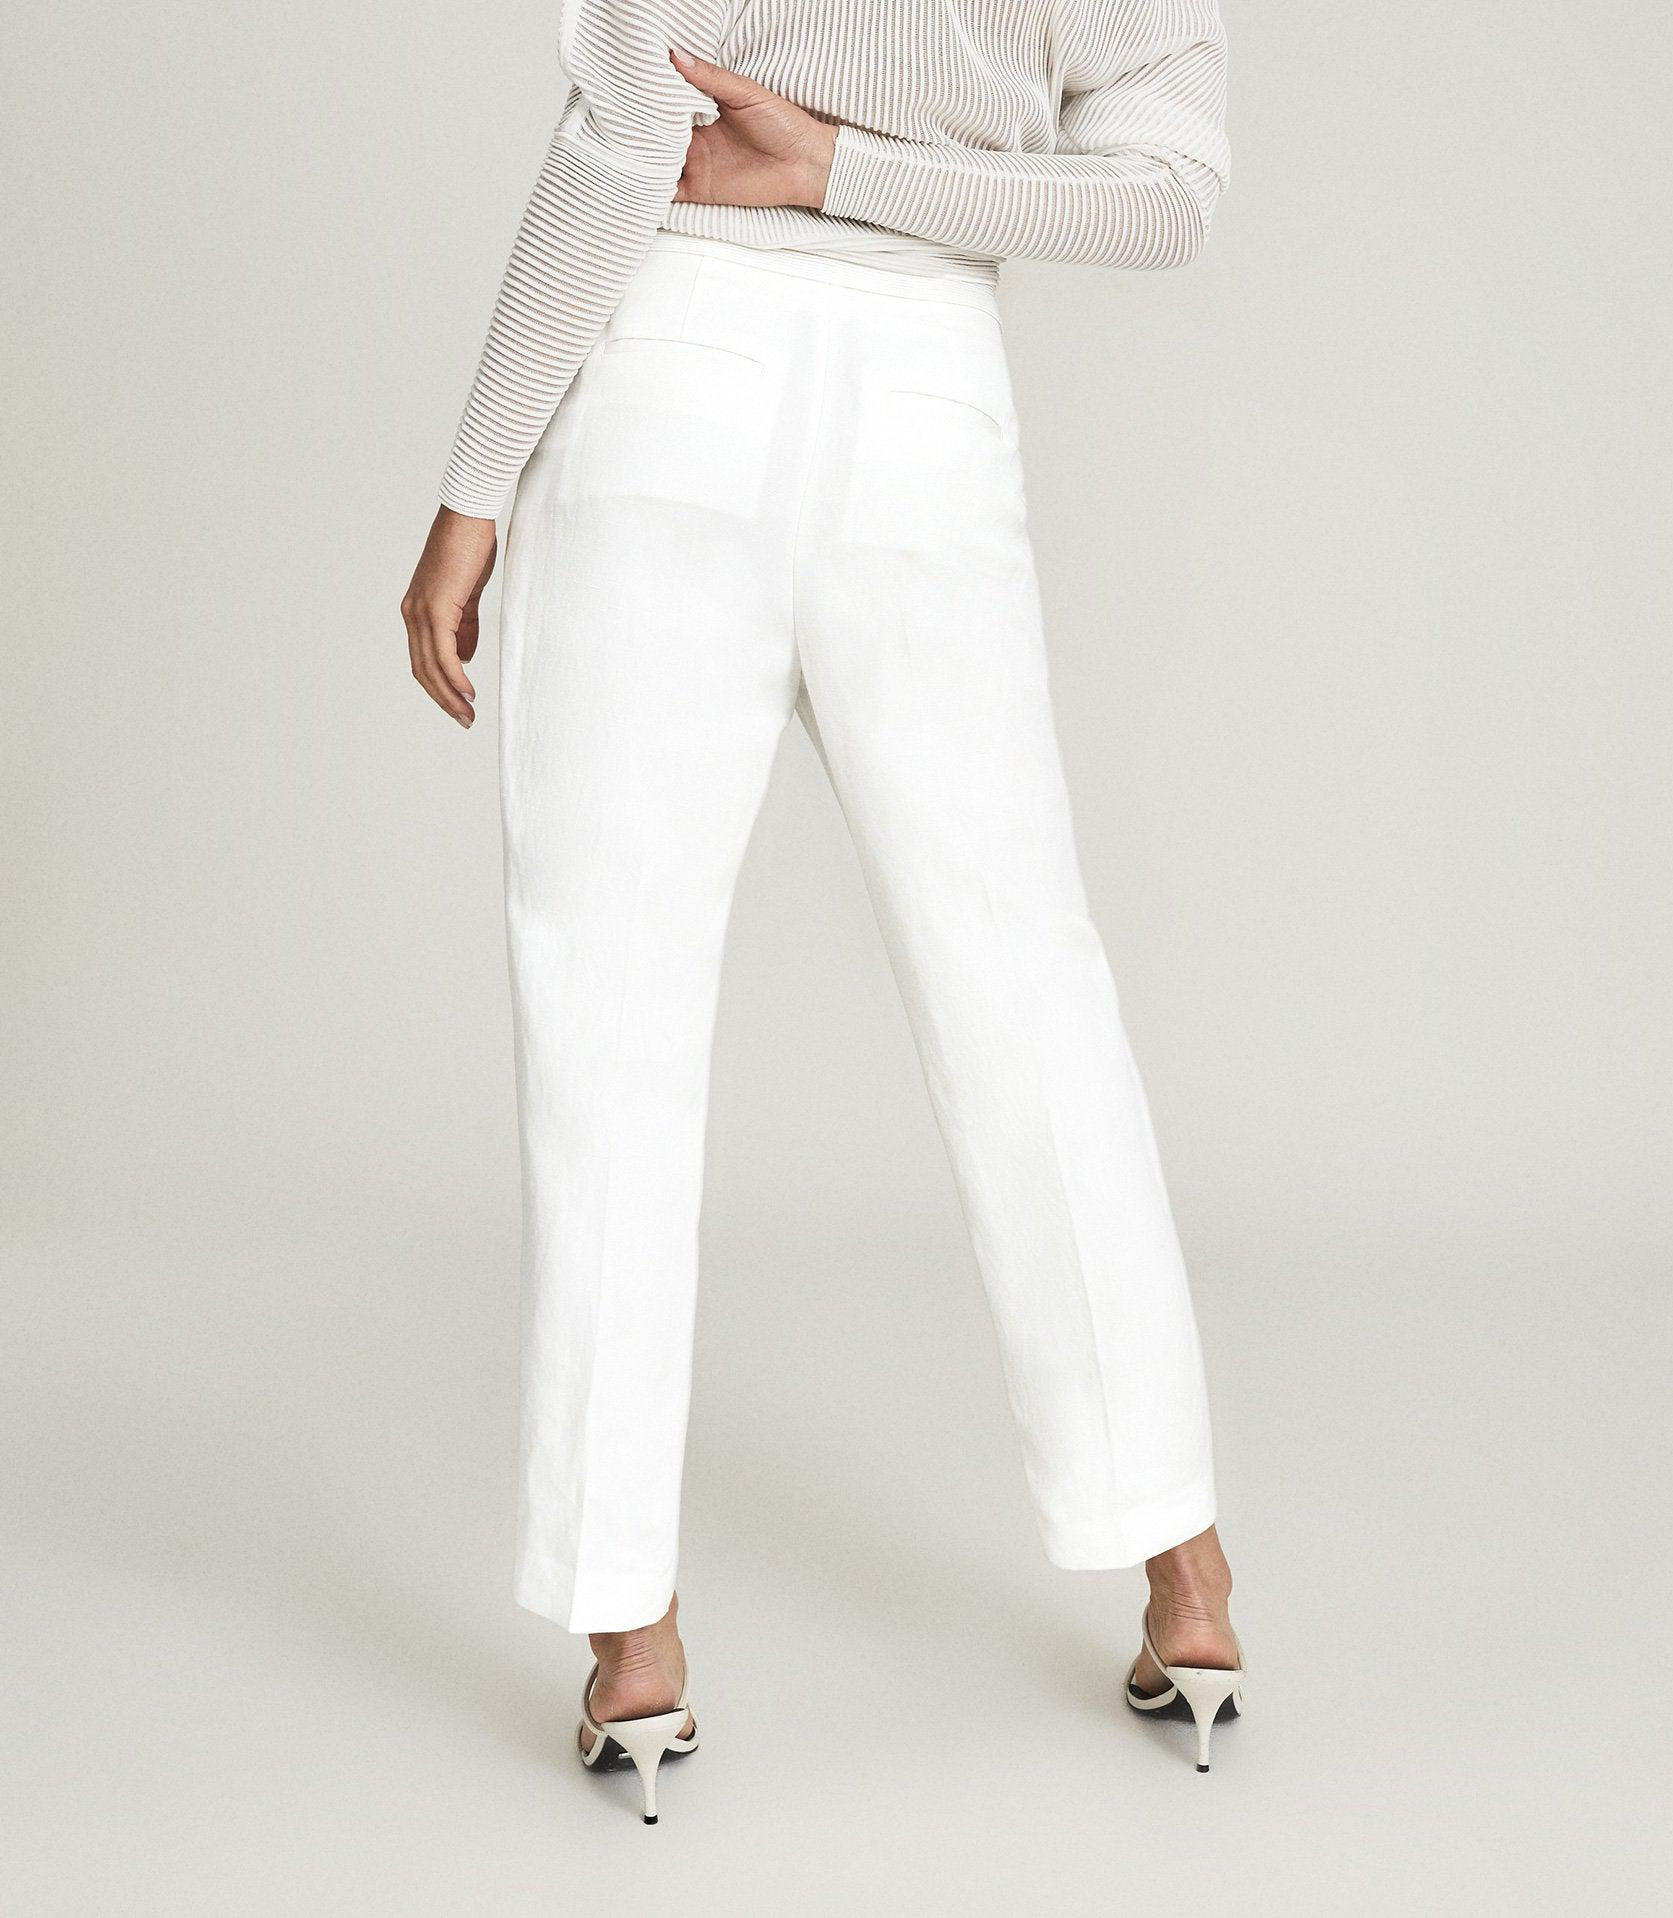 CALLY - LINEN BLEND TROUSERS WITH EXPOSED ZIP 3